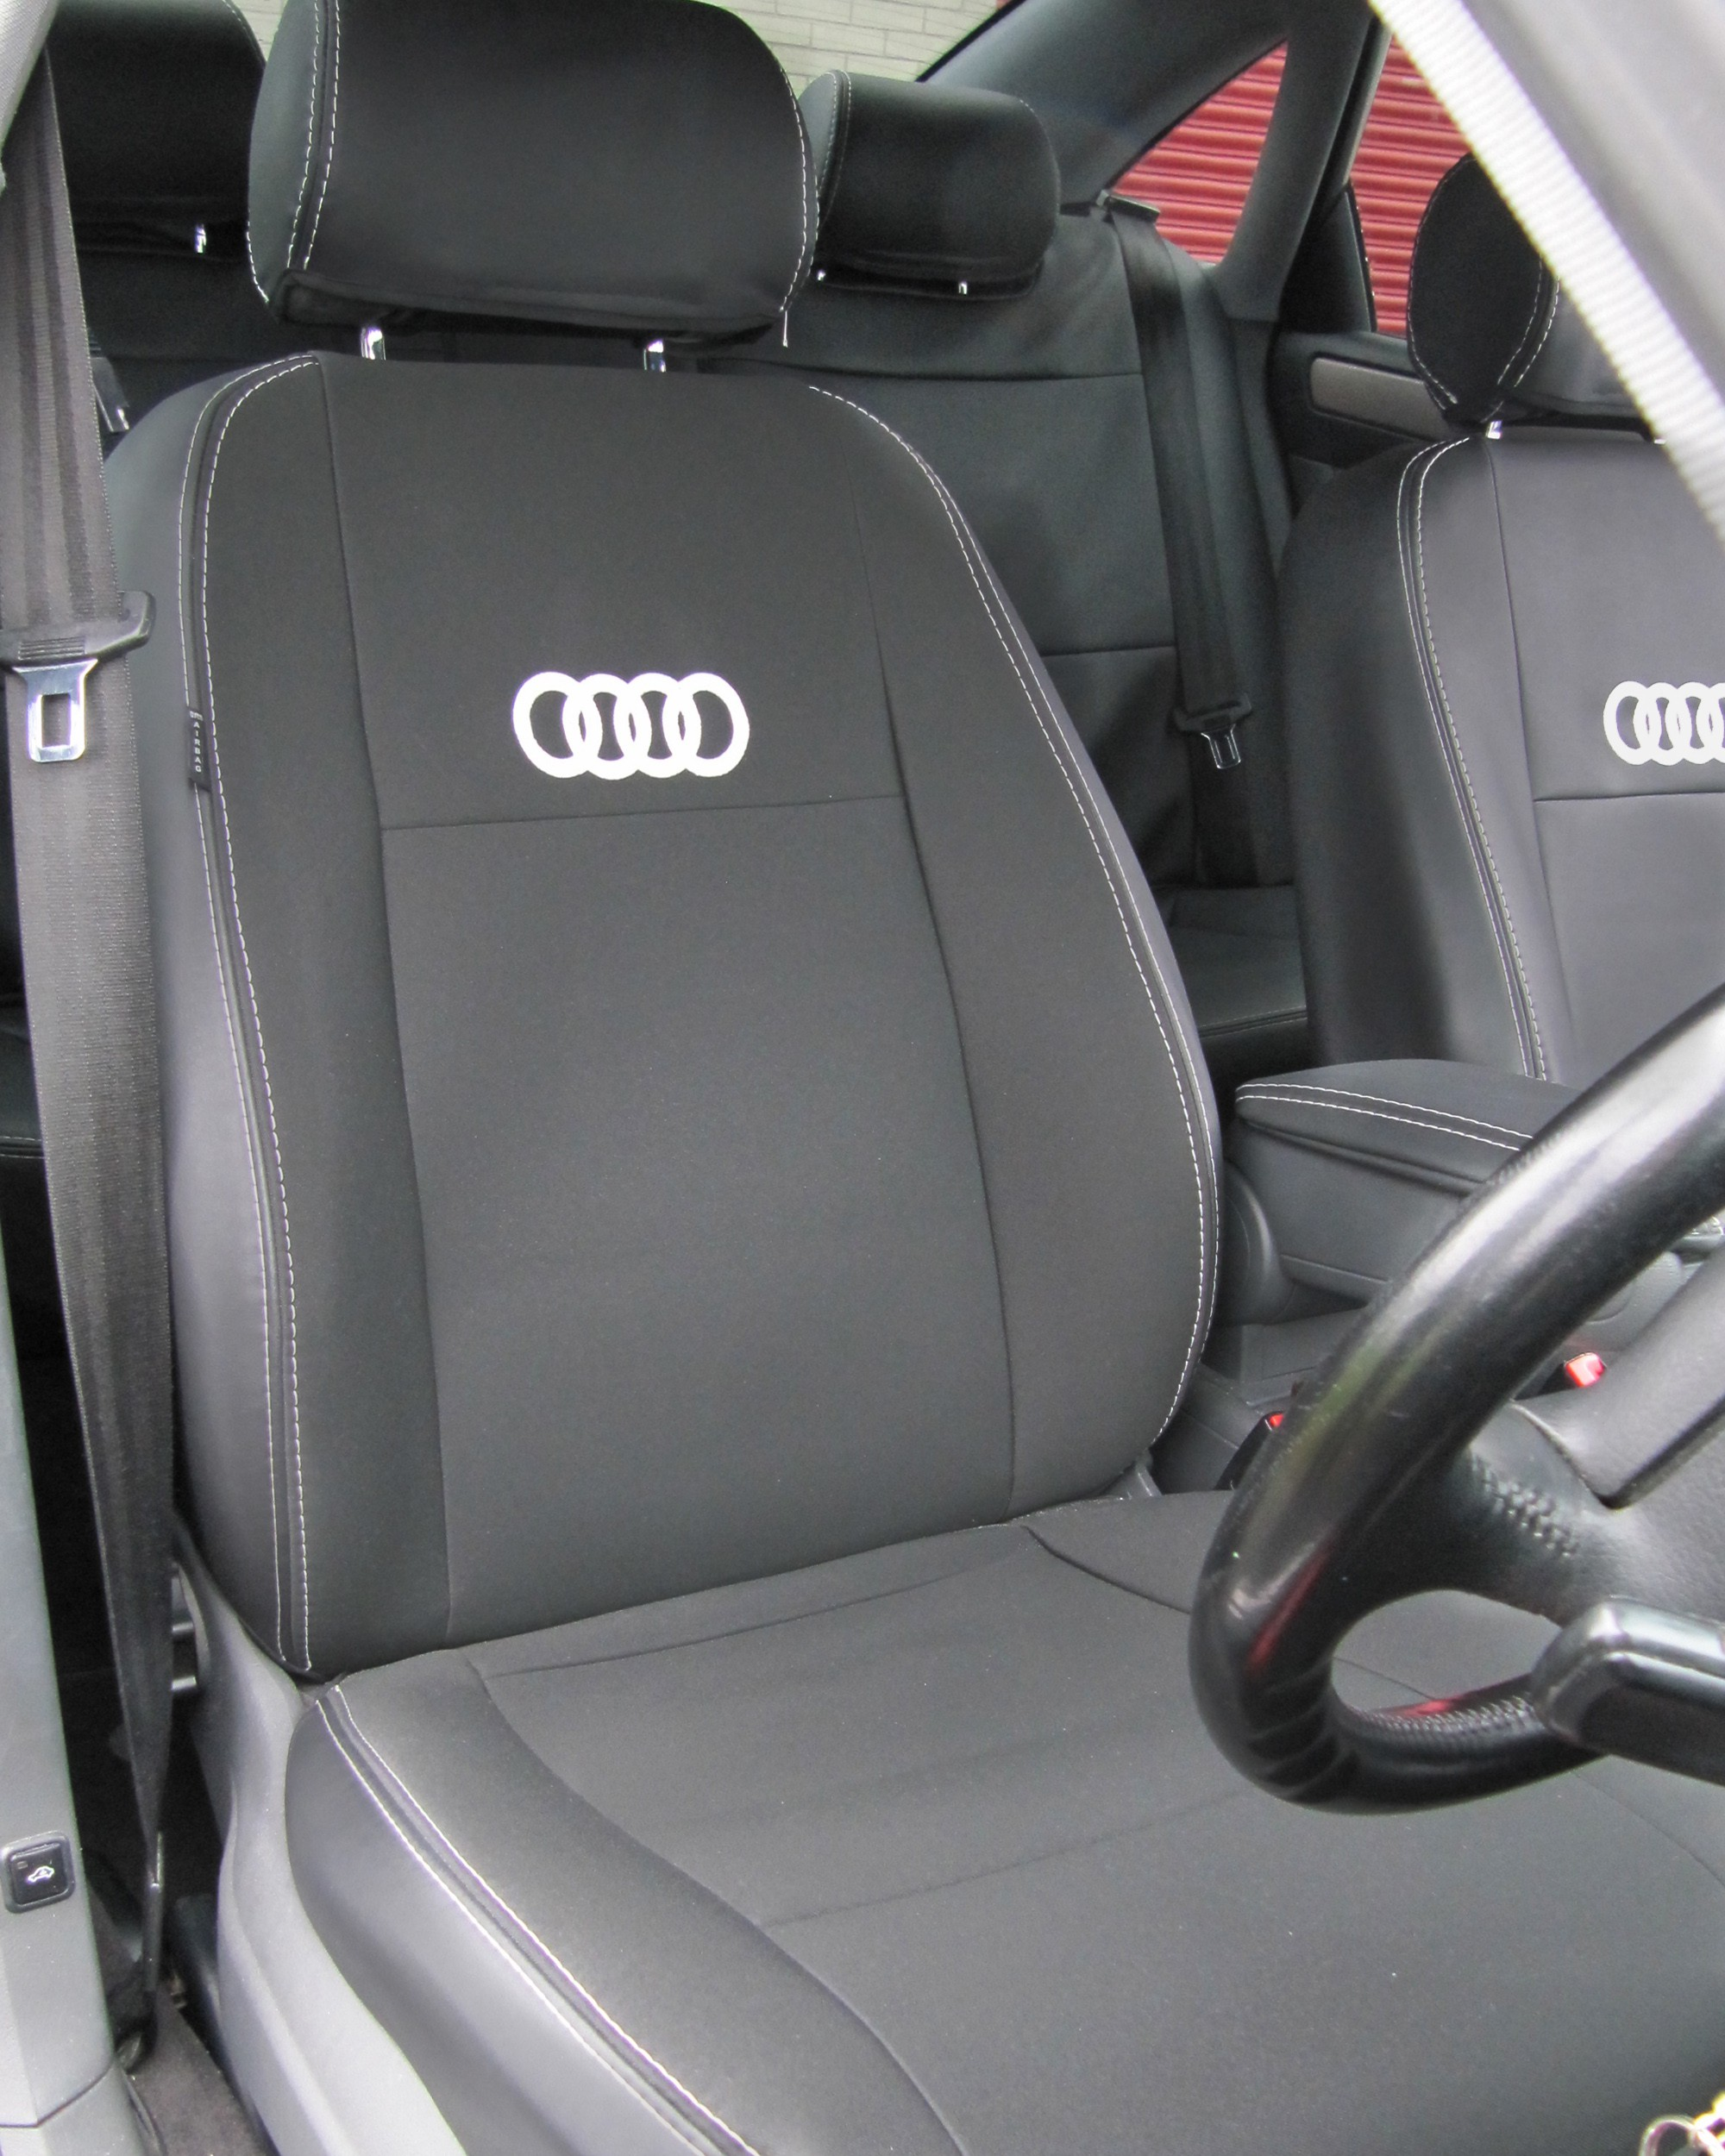 Audi A6 Seat Covers - Black With Logos